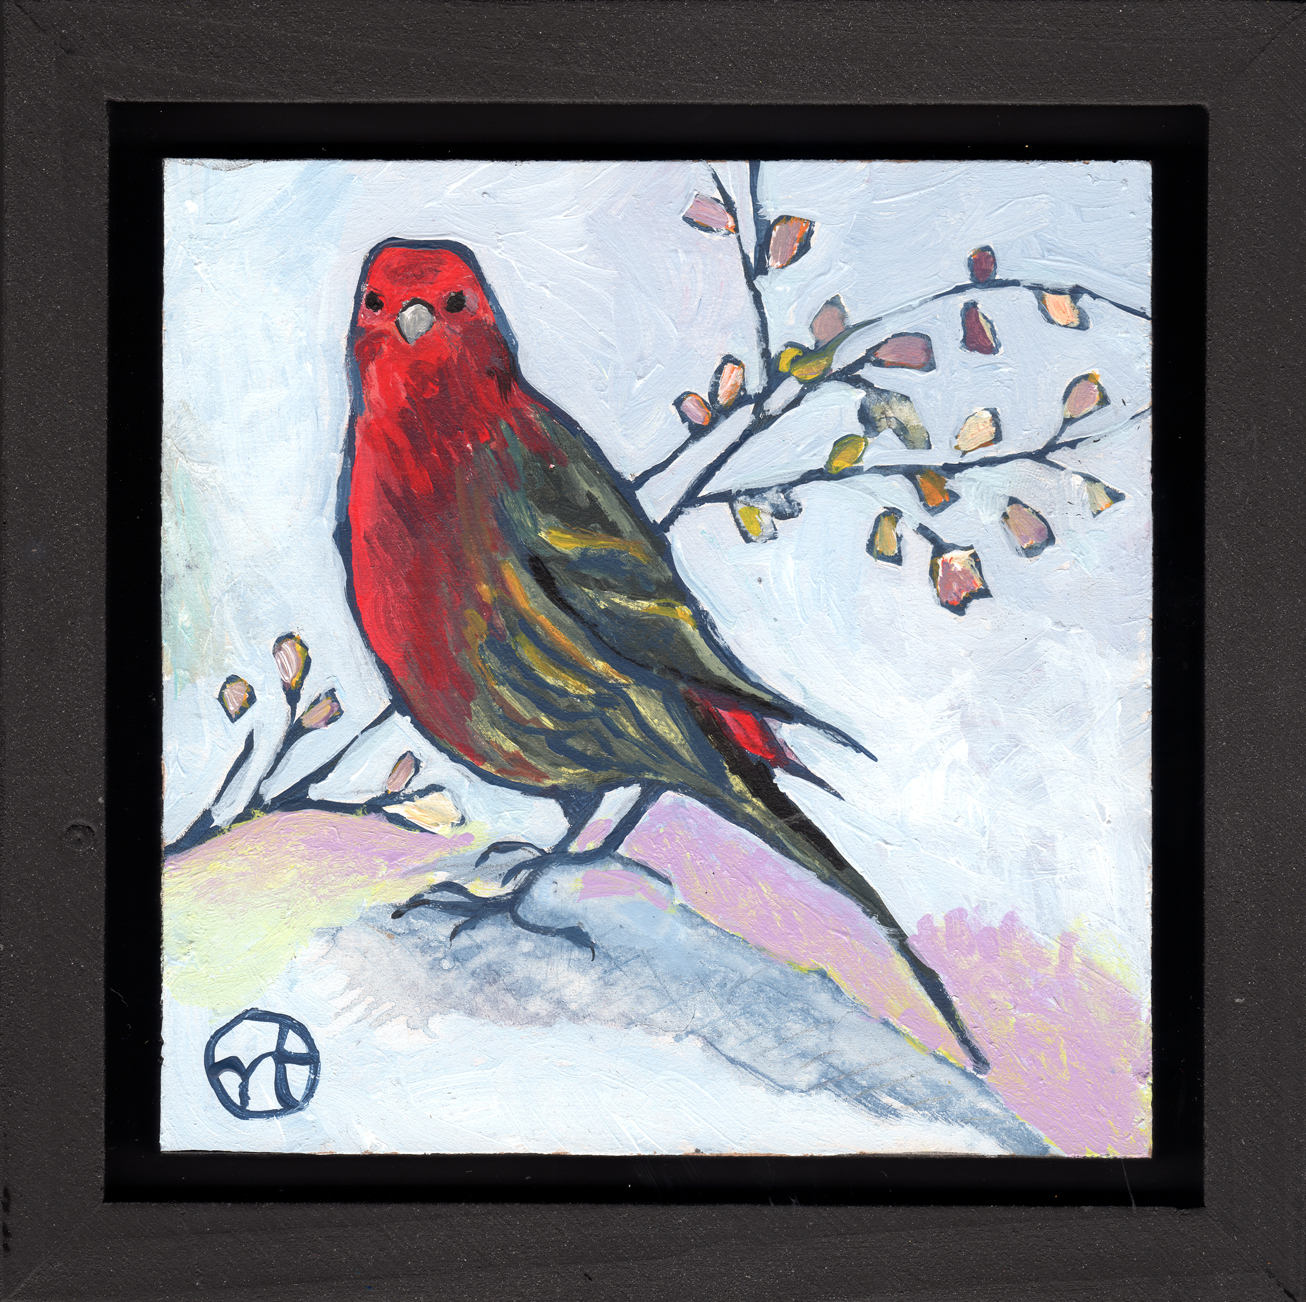 The house finch that visited my garden